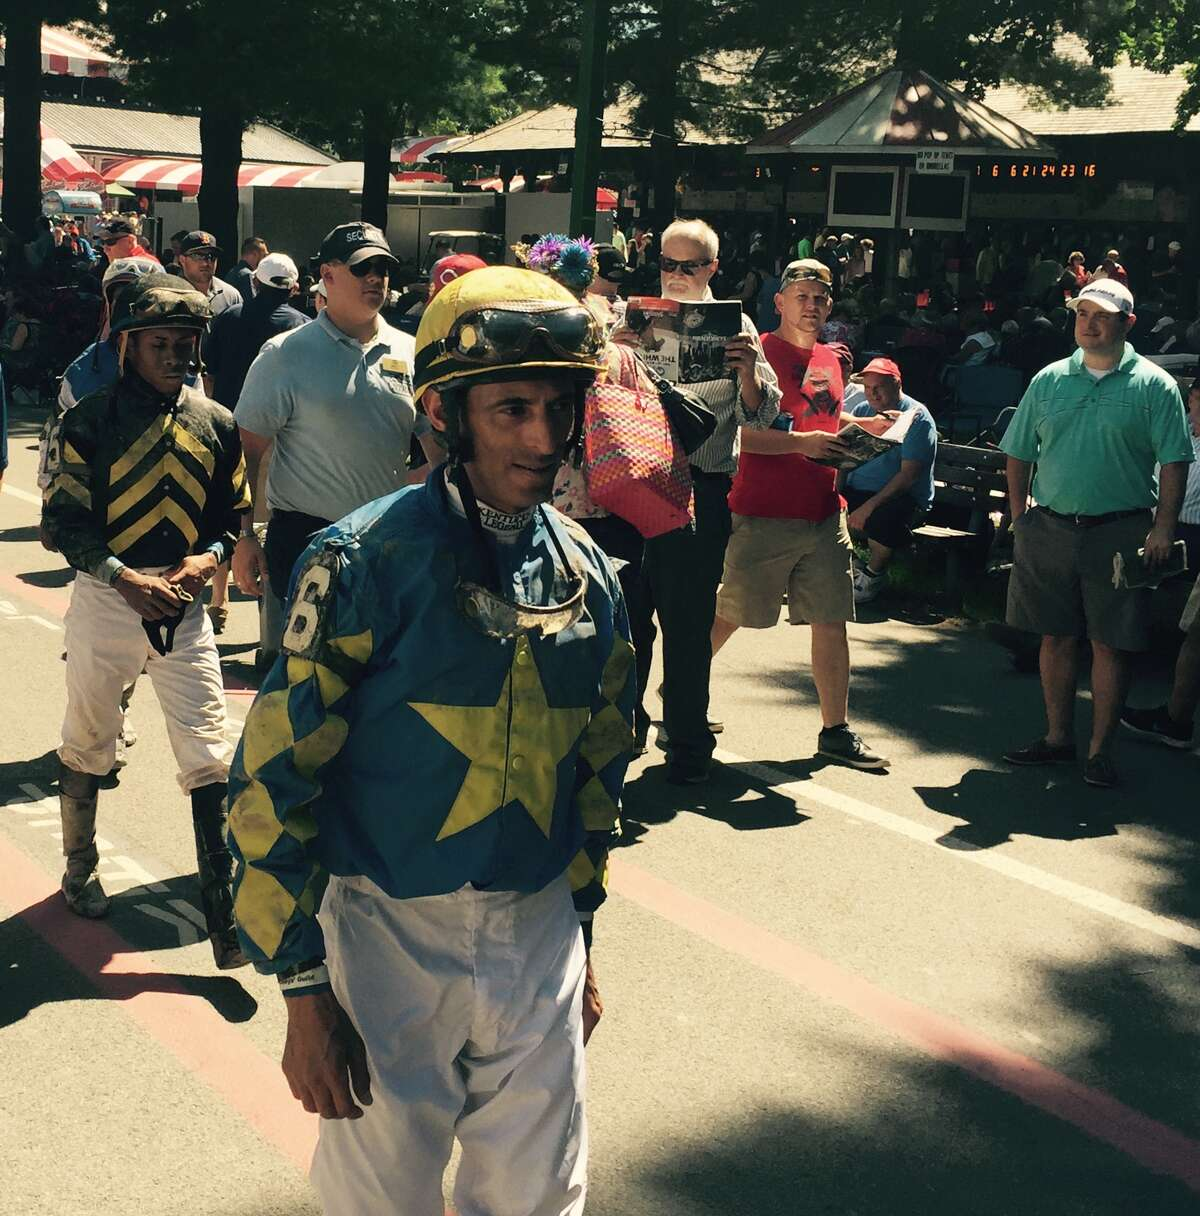 After each and every race at Saratoga, there is only one way for the jockeys to get back to their dressing room from the track. And that is to walk through the crowd. Here, John Velazquez, foreground, makes his way back after finishing second in the fourth race. That's Luis Saez, who rode Rise 'n' Tuck (finished sixth), in the background. Can you imagine athletes from other sports wading through the crowd after a game? Am sure David Ortiz would have a blast walking amongst the fans at Yankee Stadium or Jacoby Ellsbury chatting up the crowd at Fenway. ?-Tim Wilkin